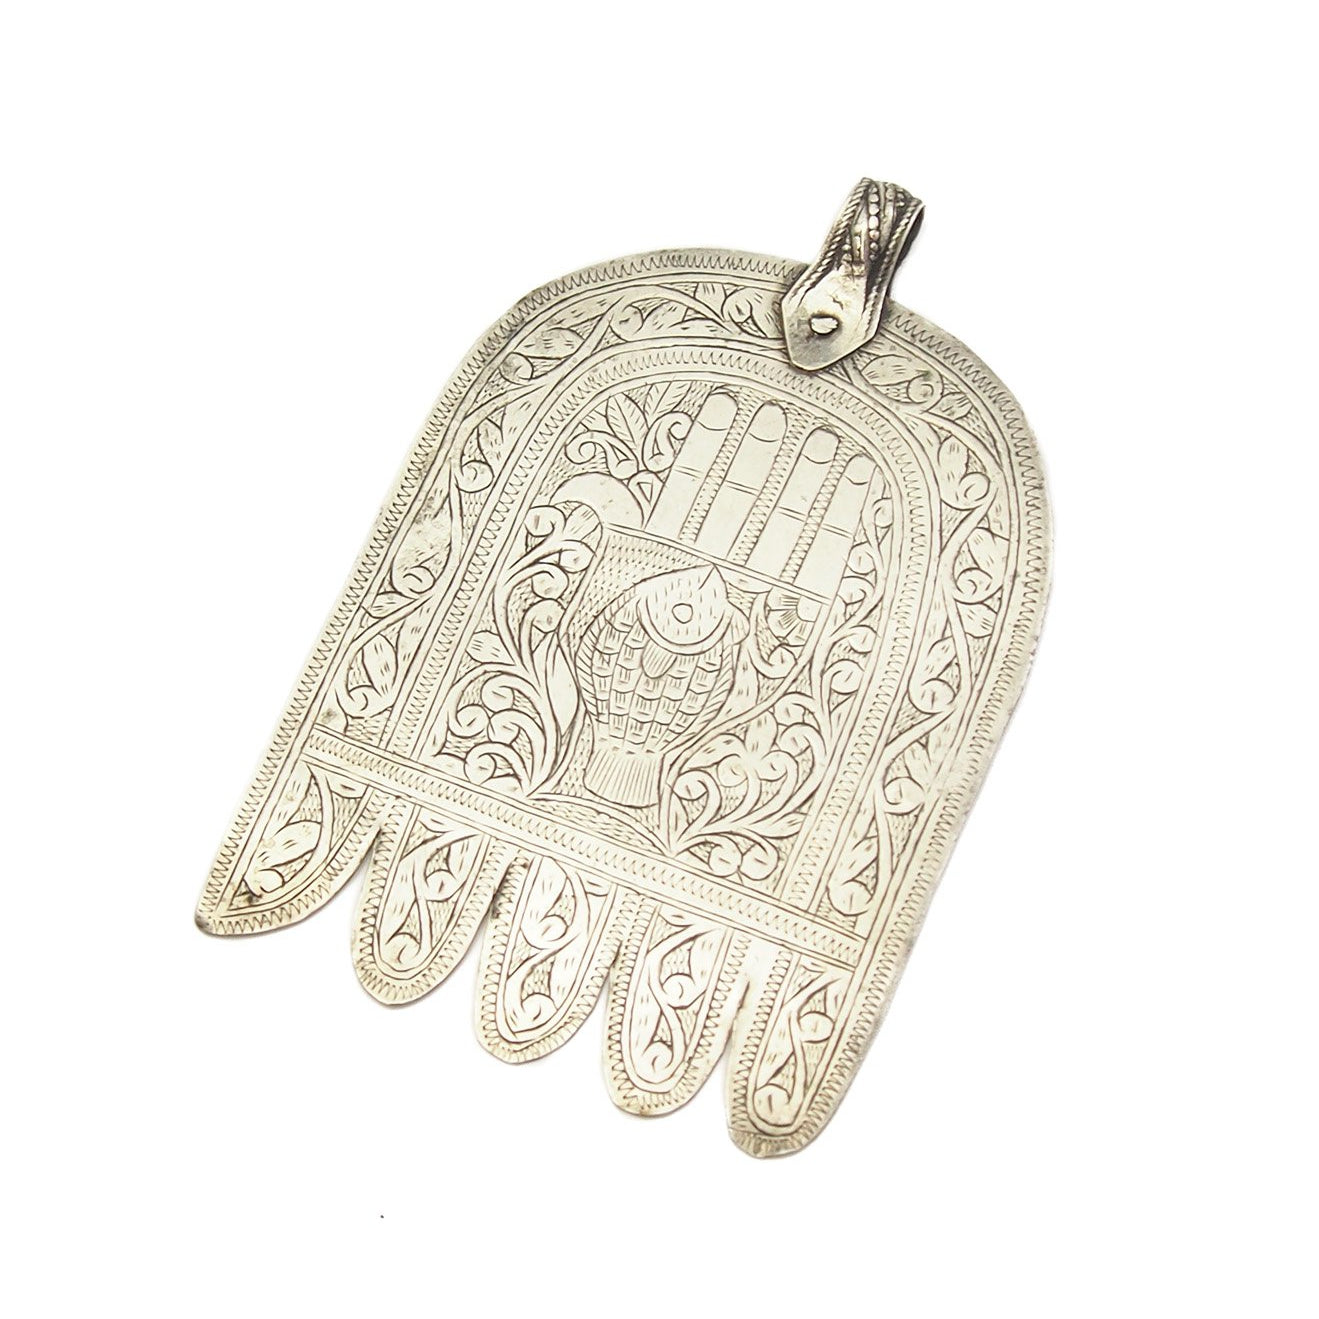 Hands Of The Ancestors Rare Hamsa Amulets From Morocco Tagged Fish